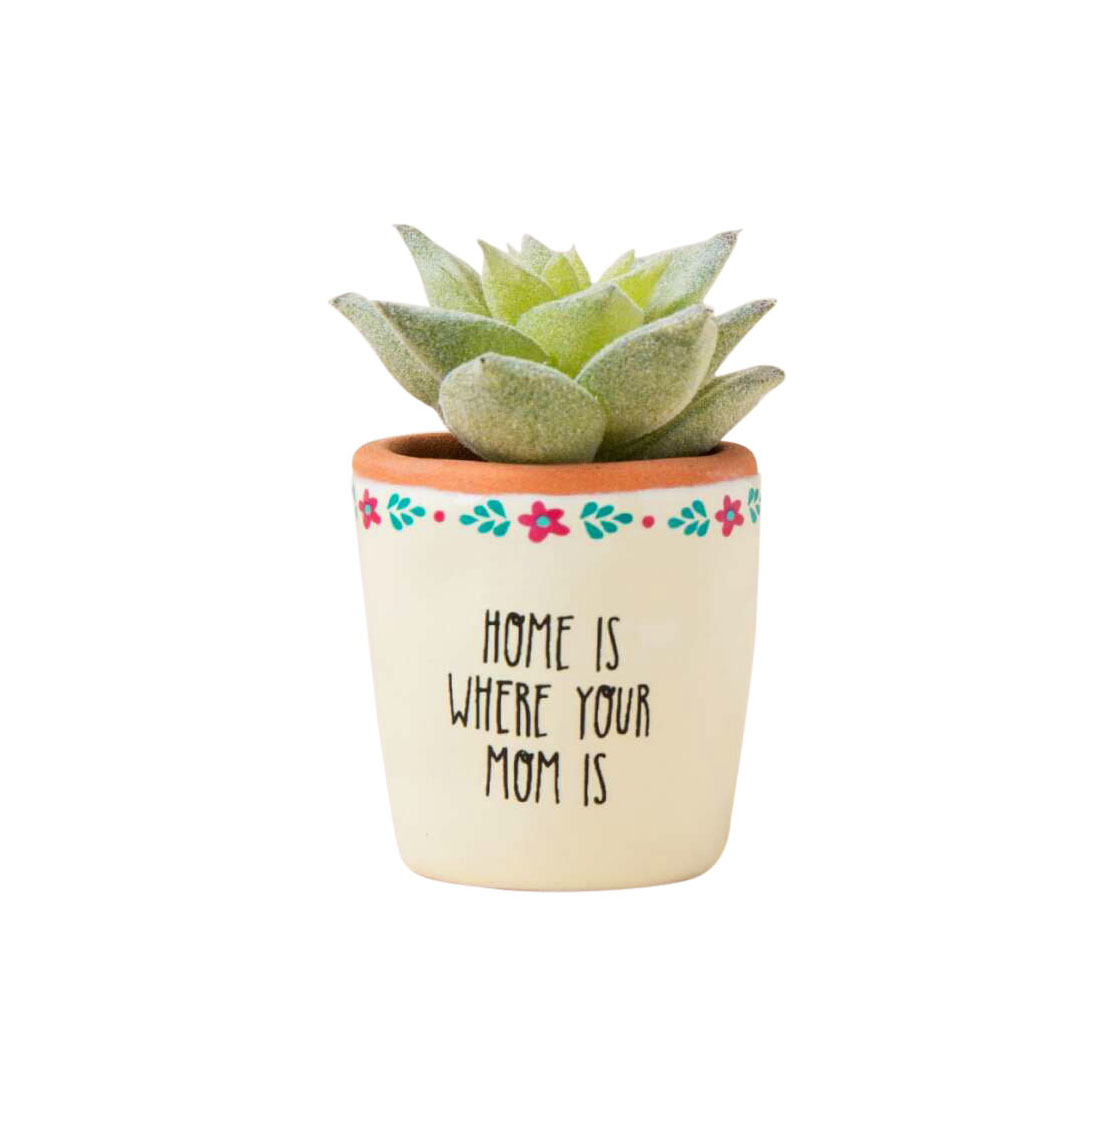 Home Is Where Your Mom Is Mini Succulent